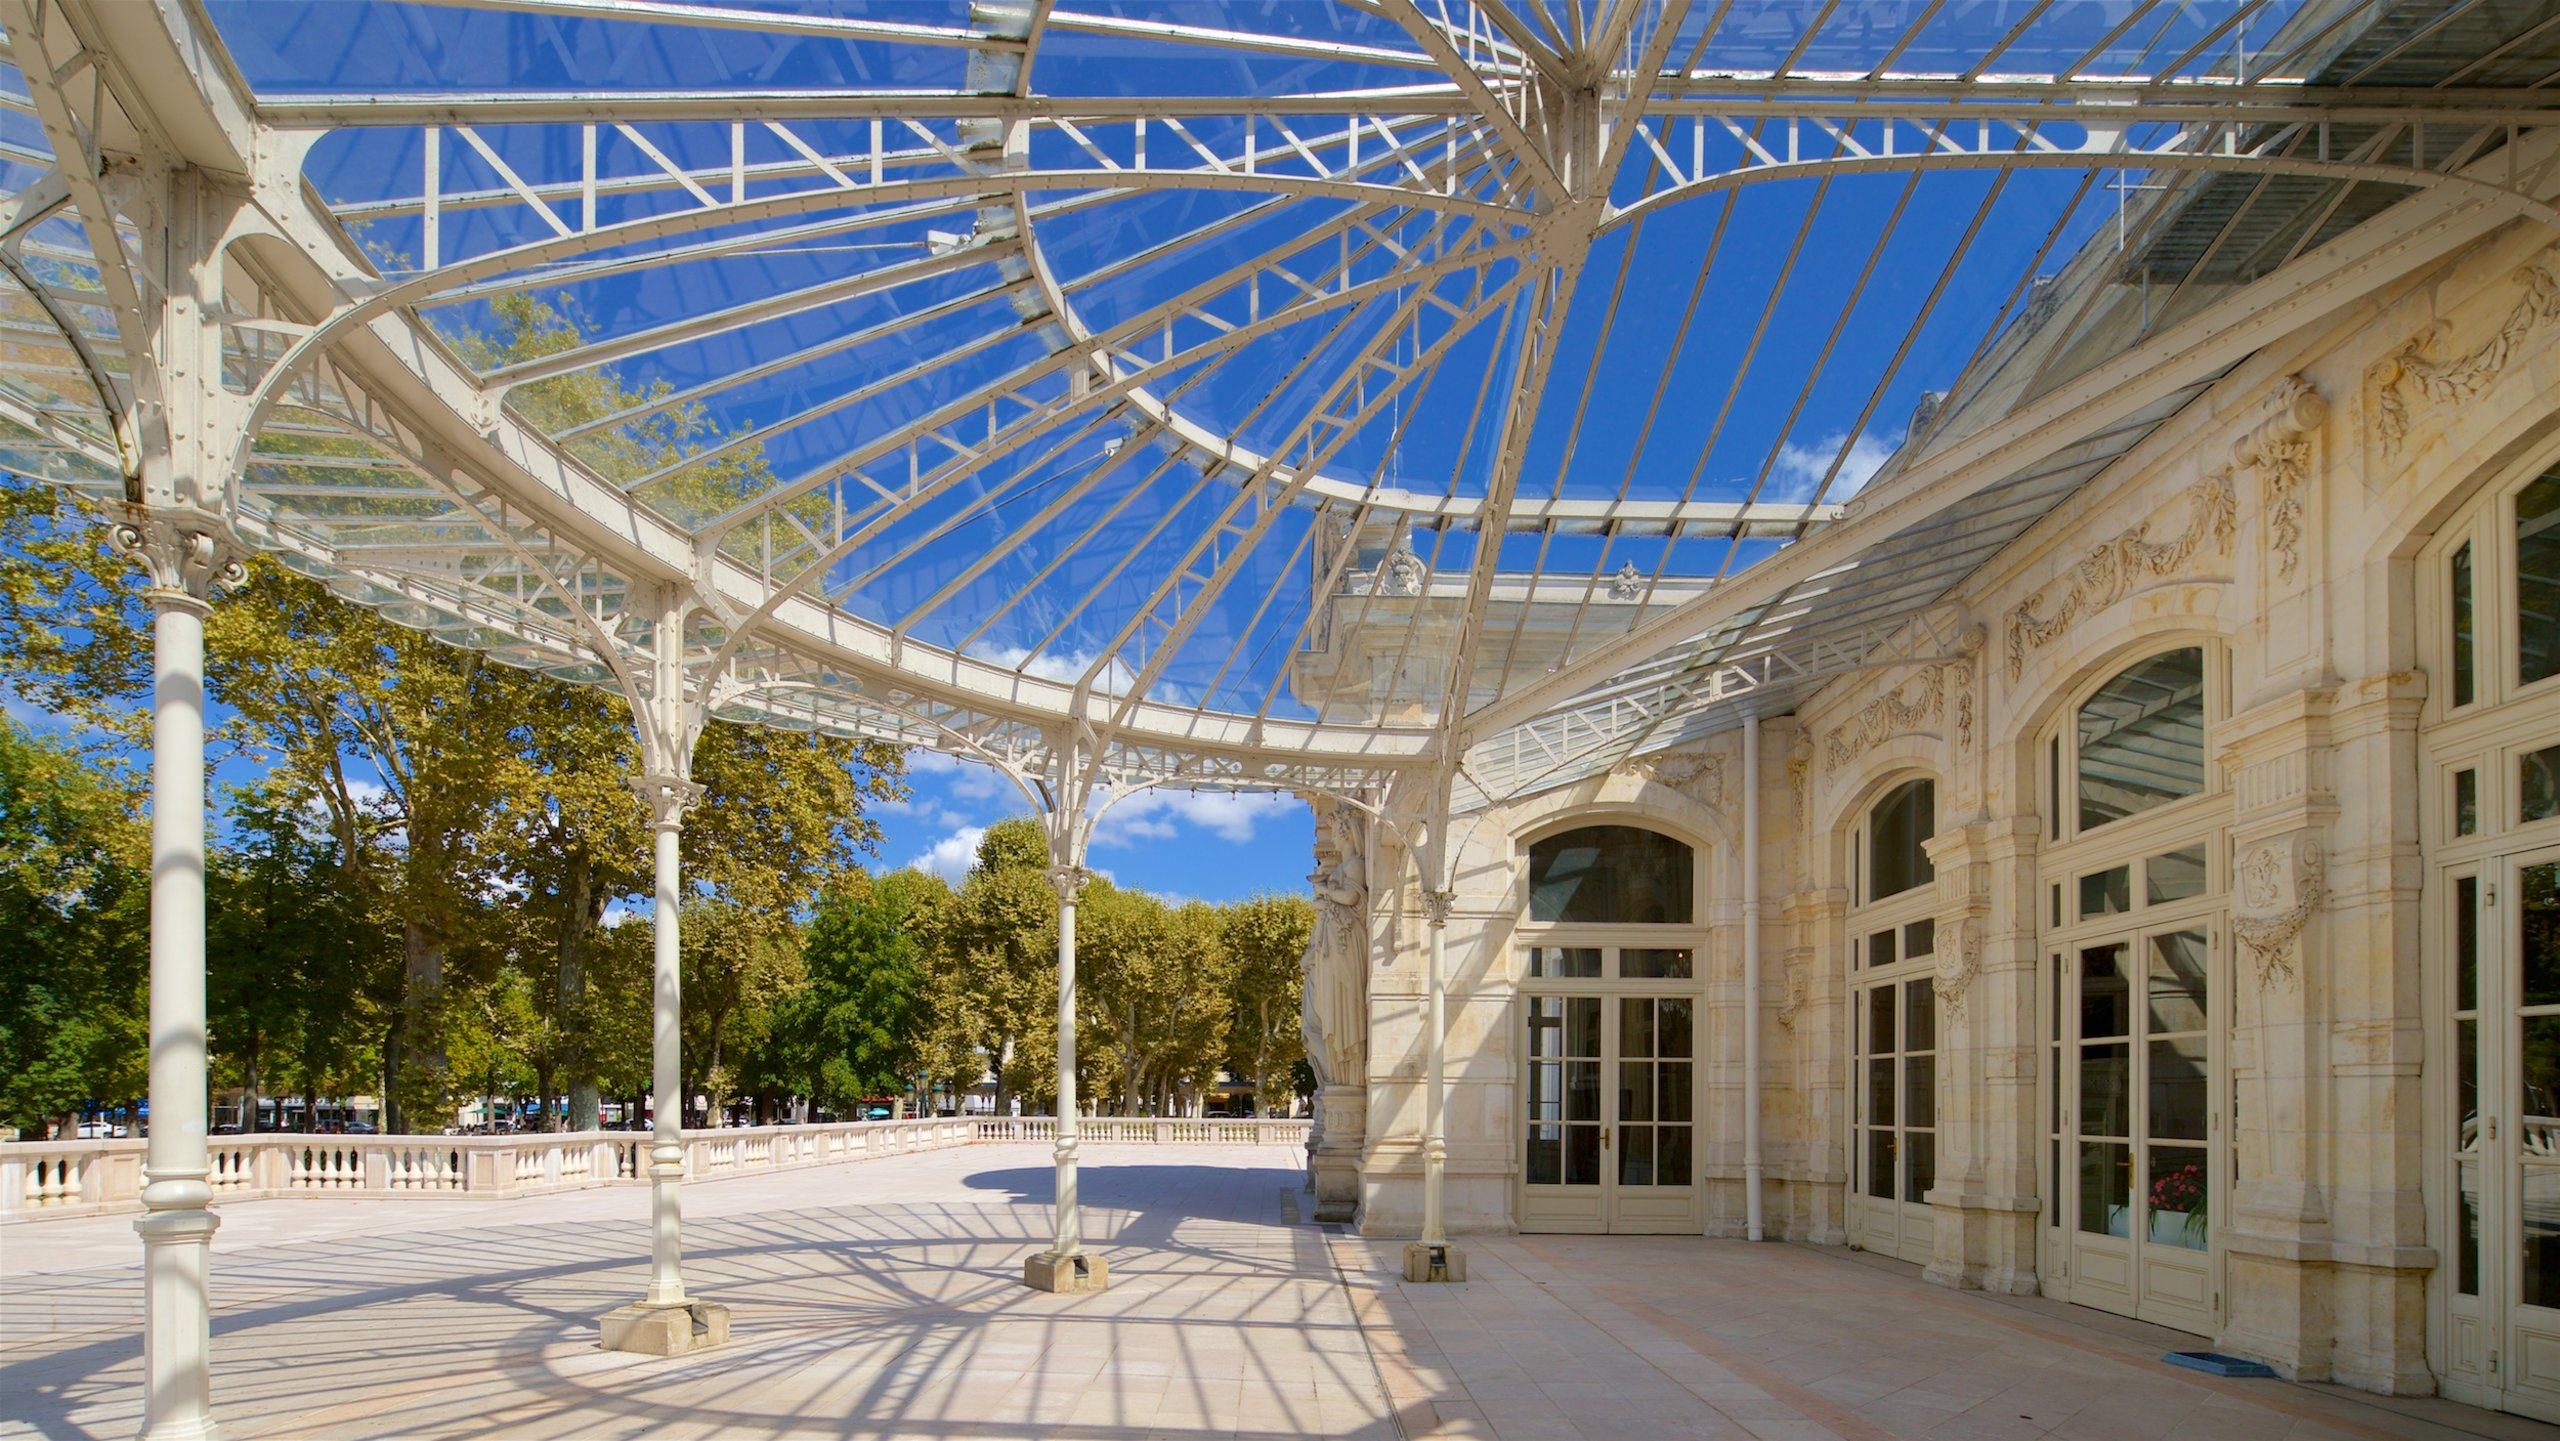 Thermal, Vichy, Allier, France